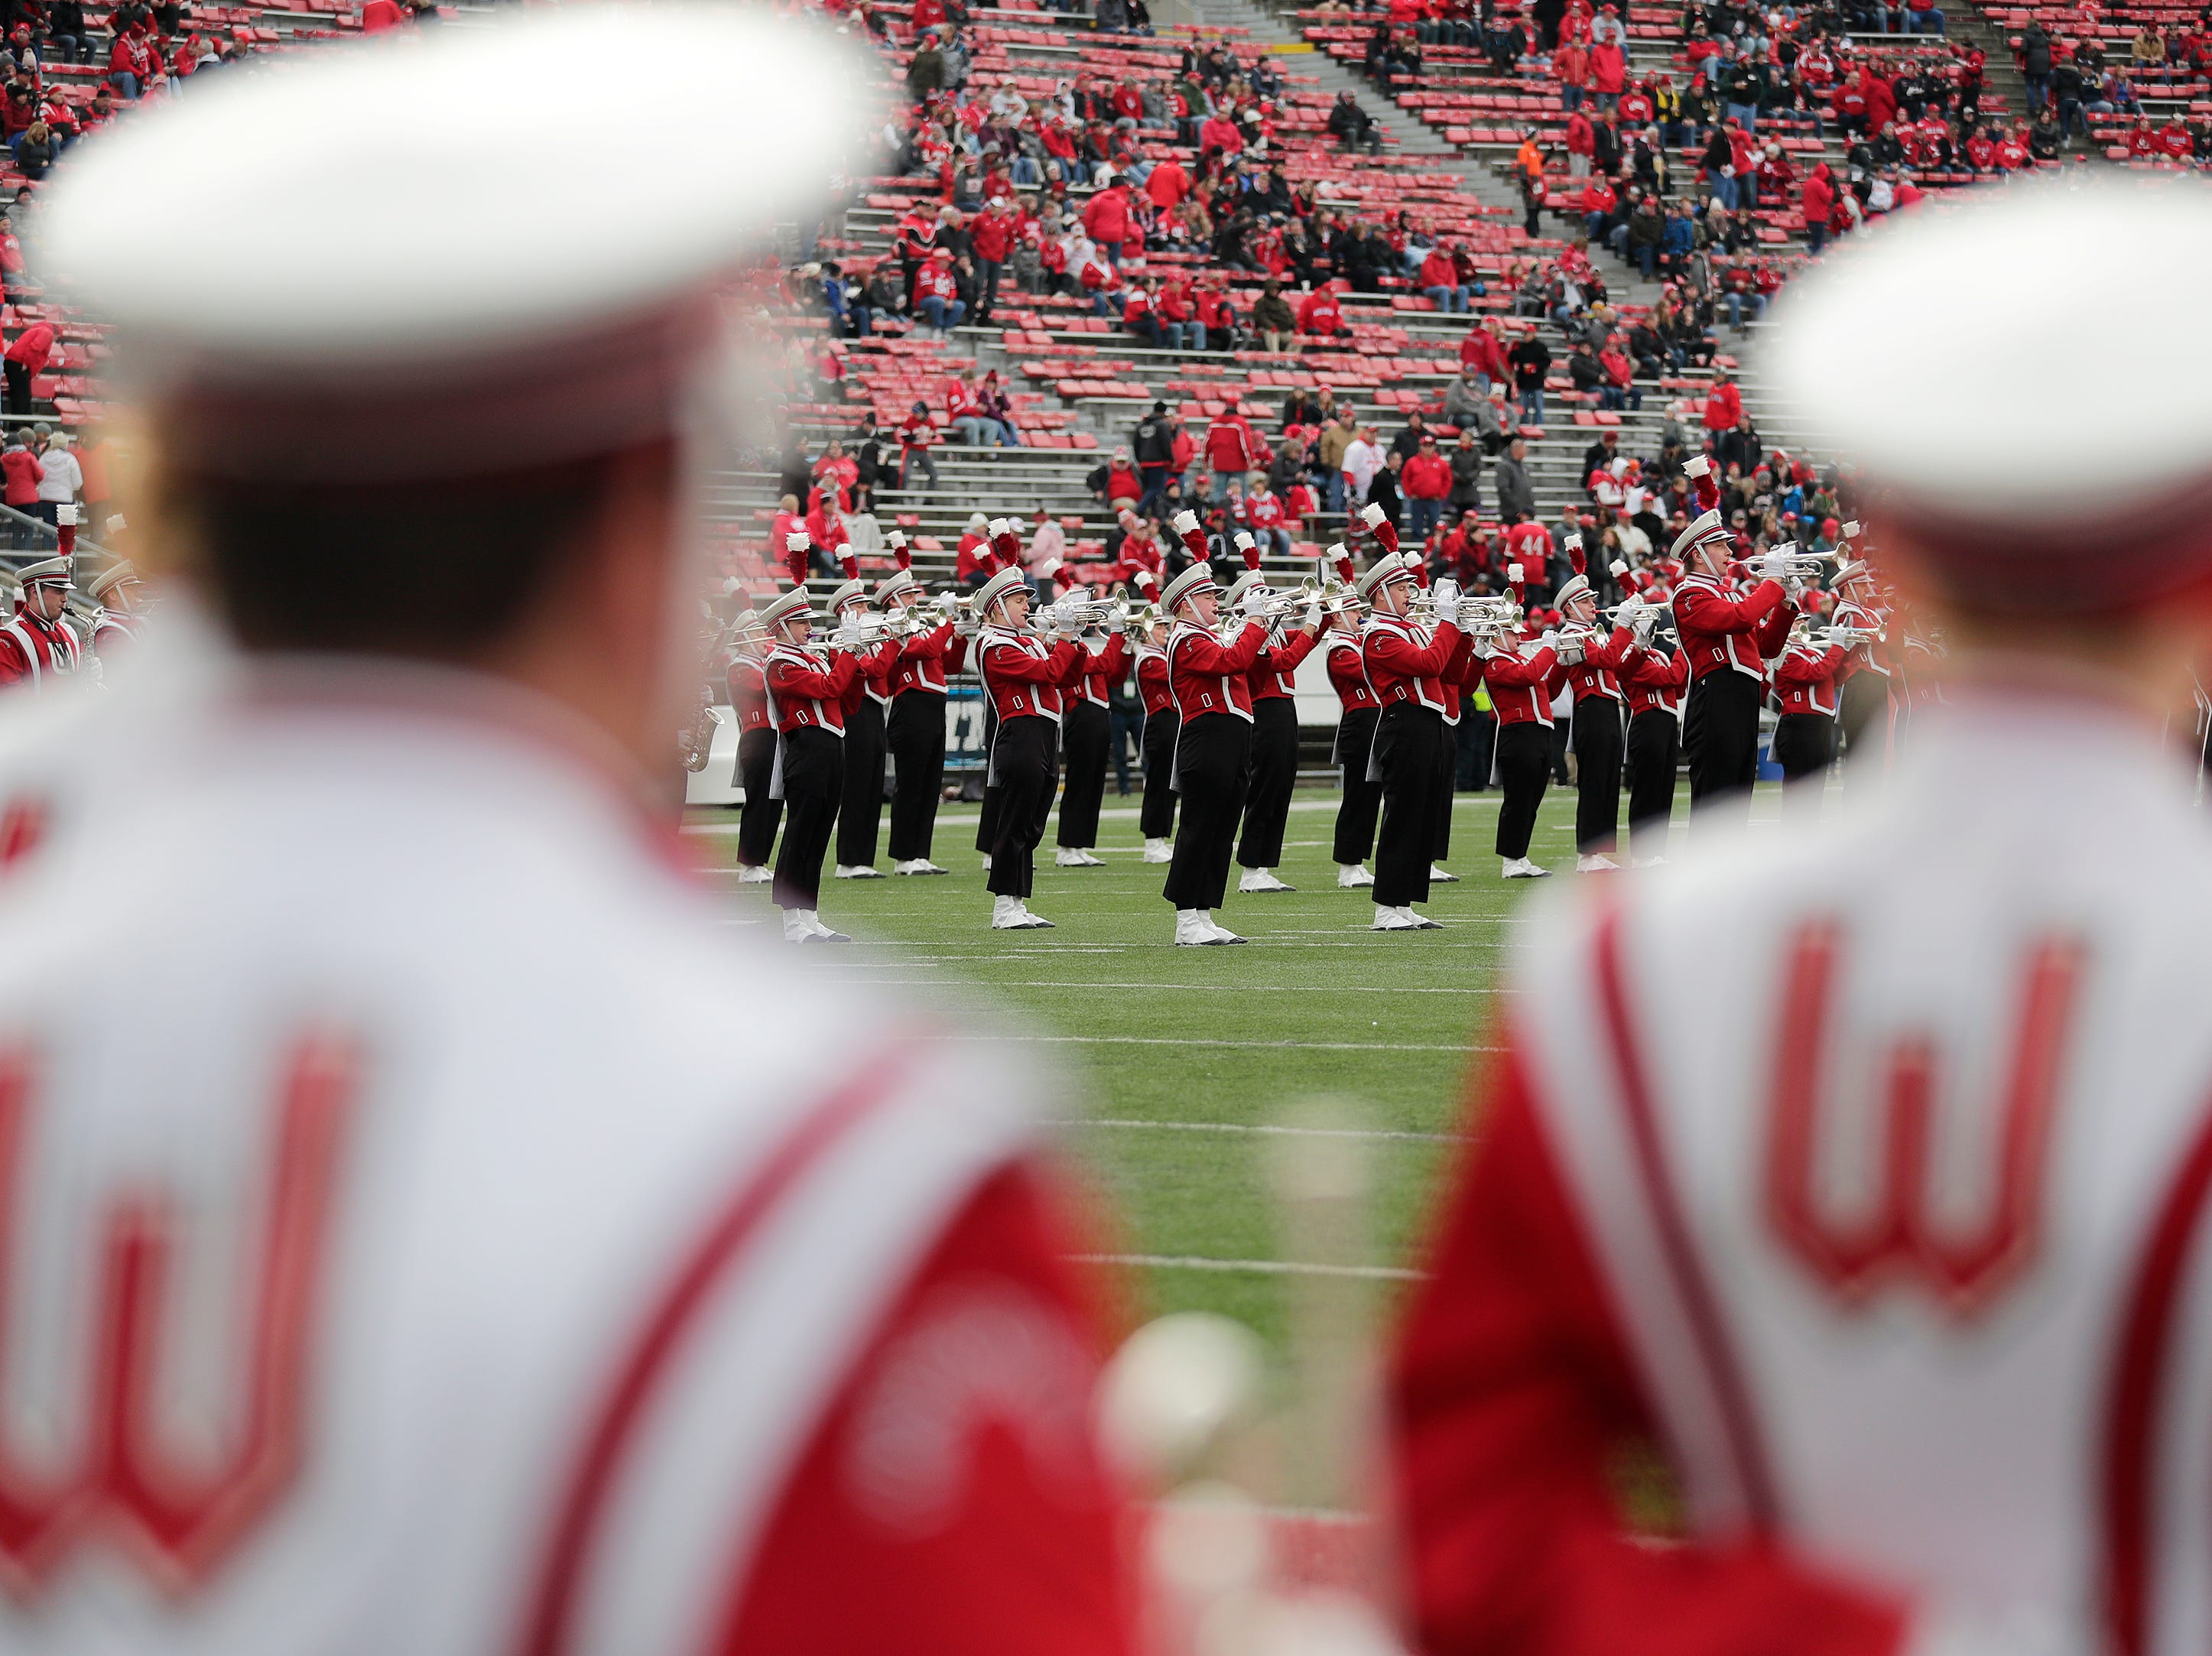 The Wisconsin marching band performs before a Big Ten football game at Camp Randall Stadium on Saturday, November 3, 2018 in Madison, Wis.Adam Wesley/USA TODAY NETWORK-Wisconsin